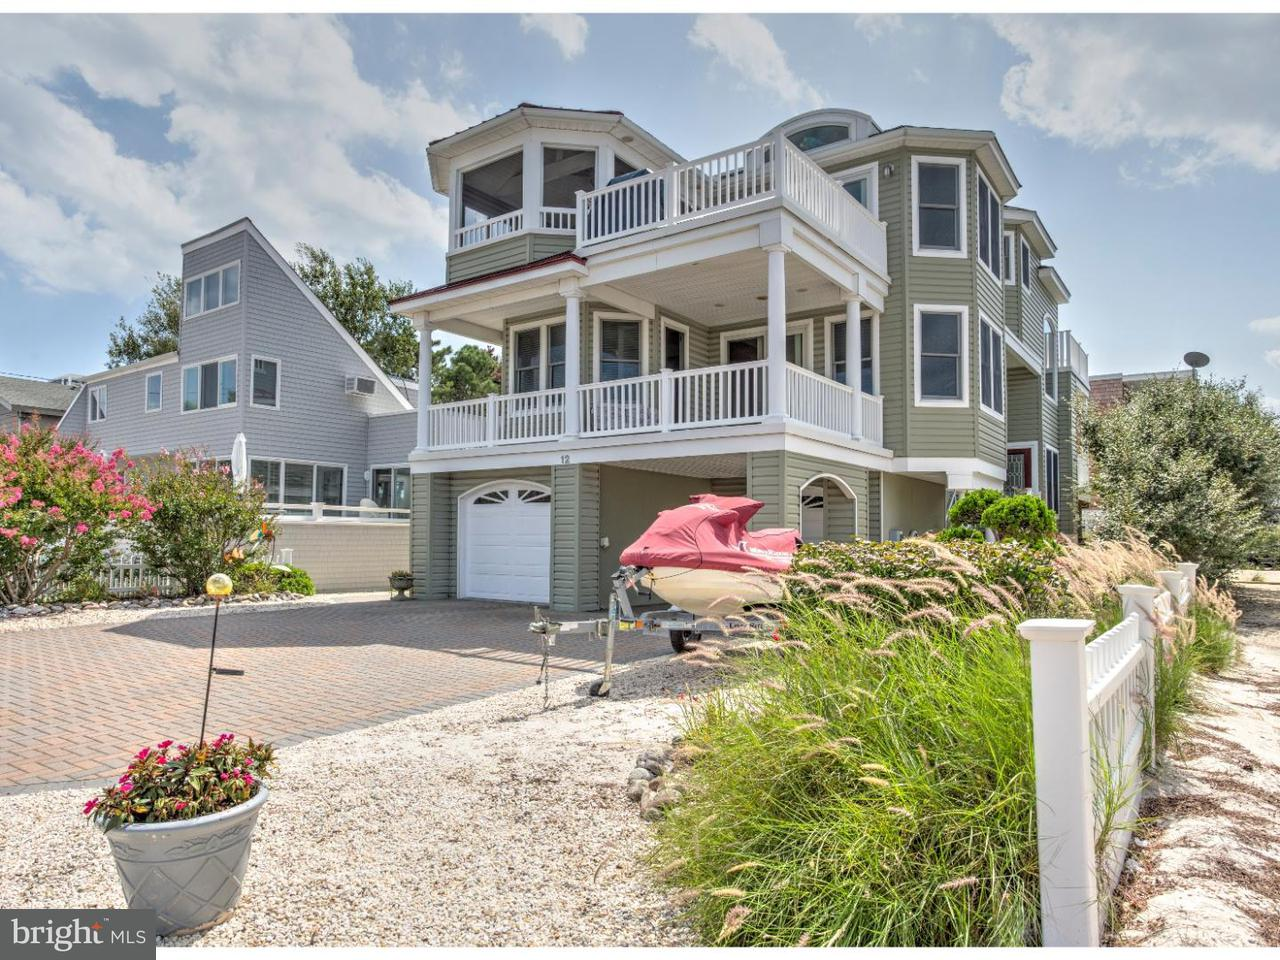 Single Family Home for Sale at 12 W BERGEN Avenue Harvey Cedars, New Jersey 08008 United States